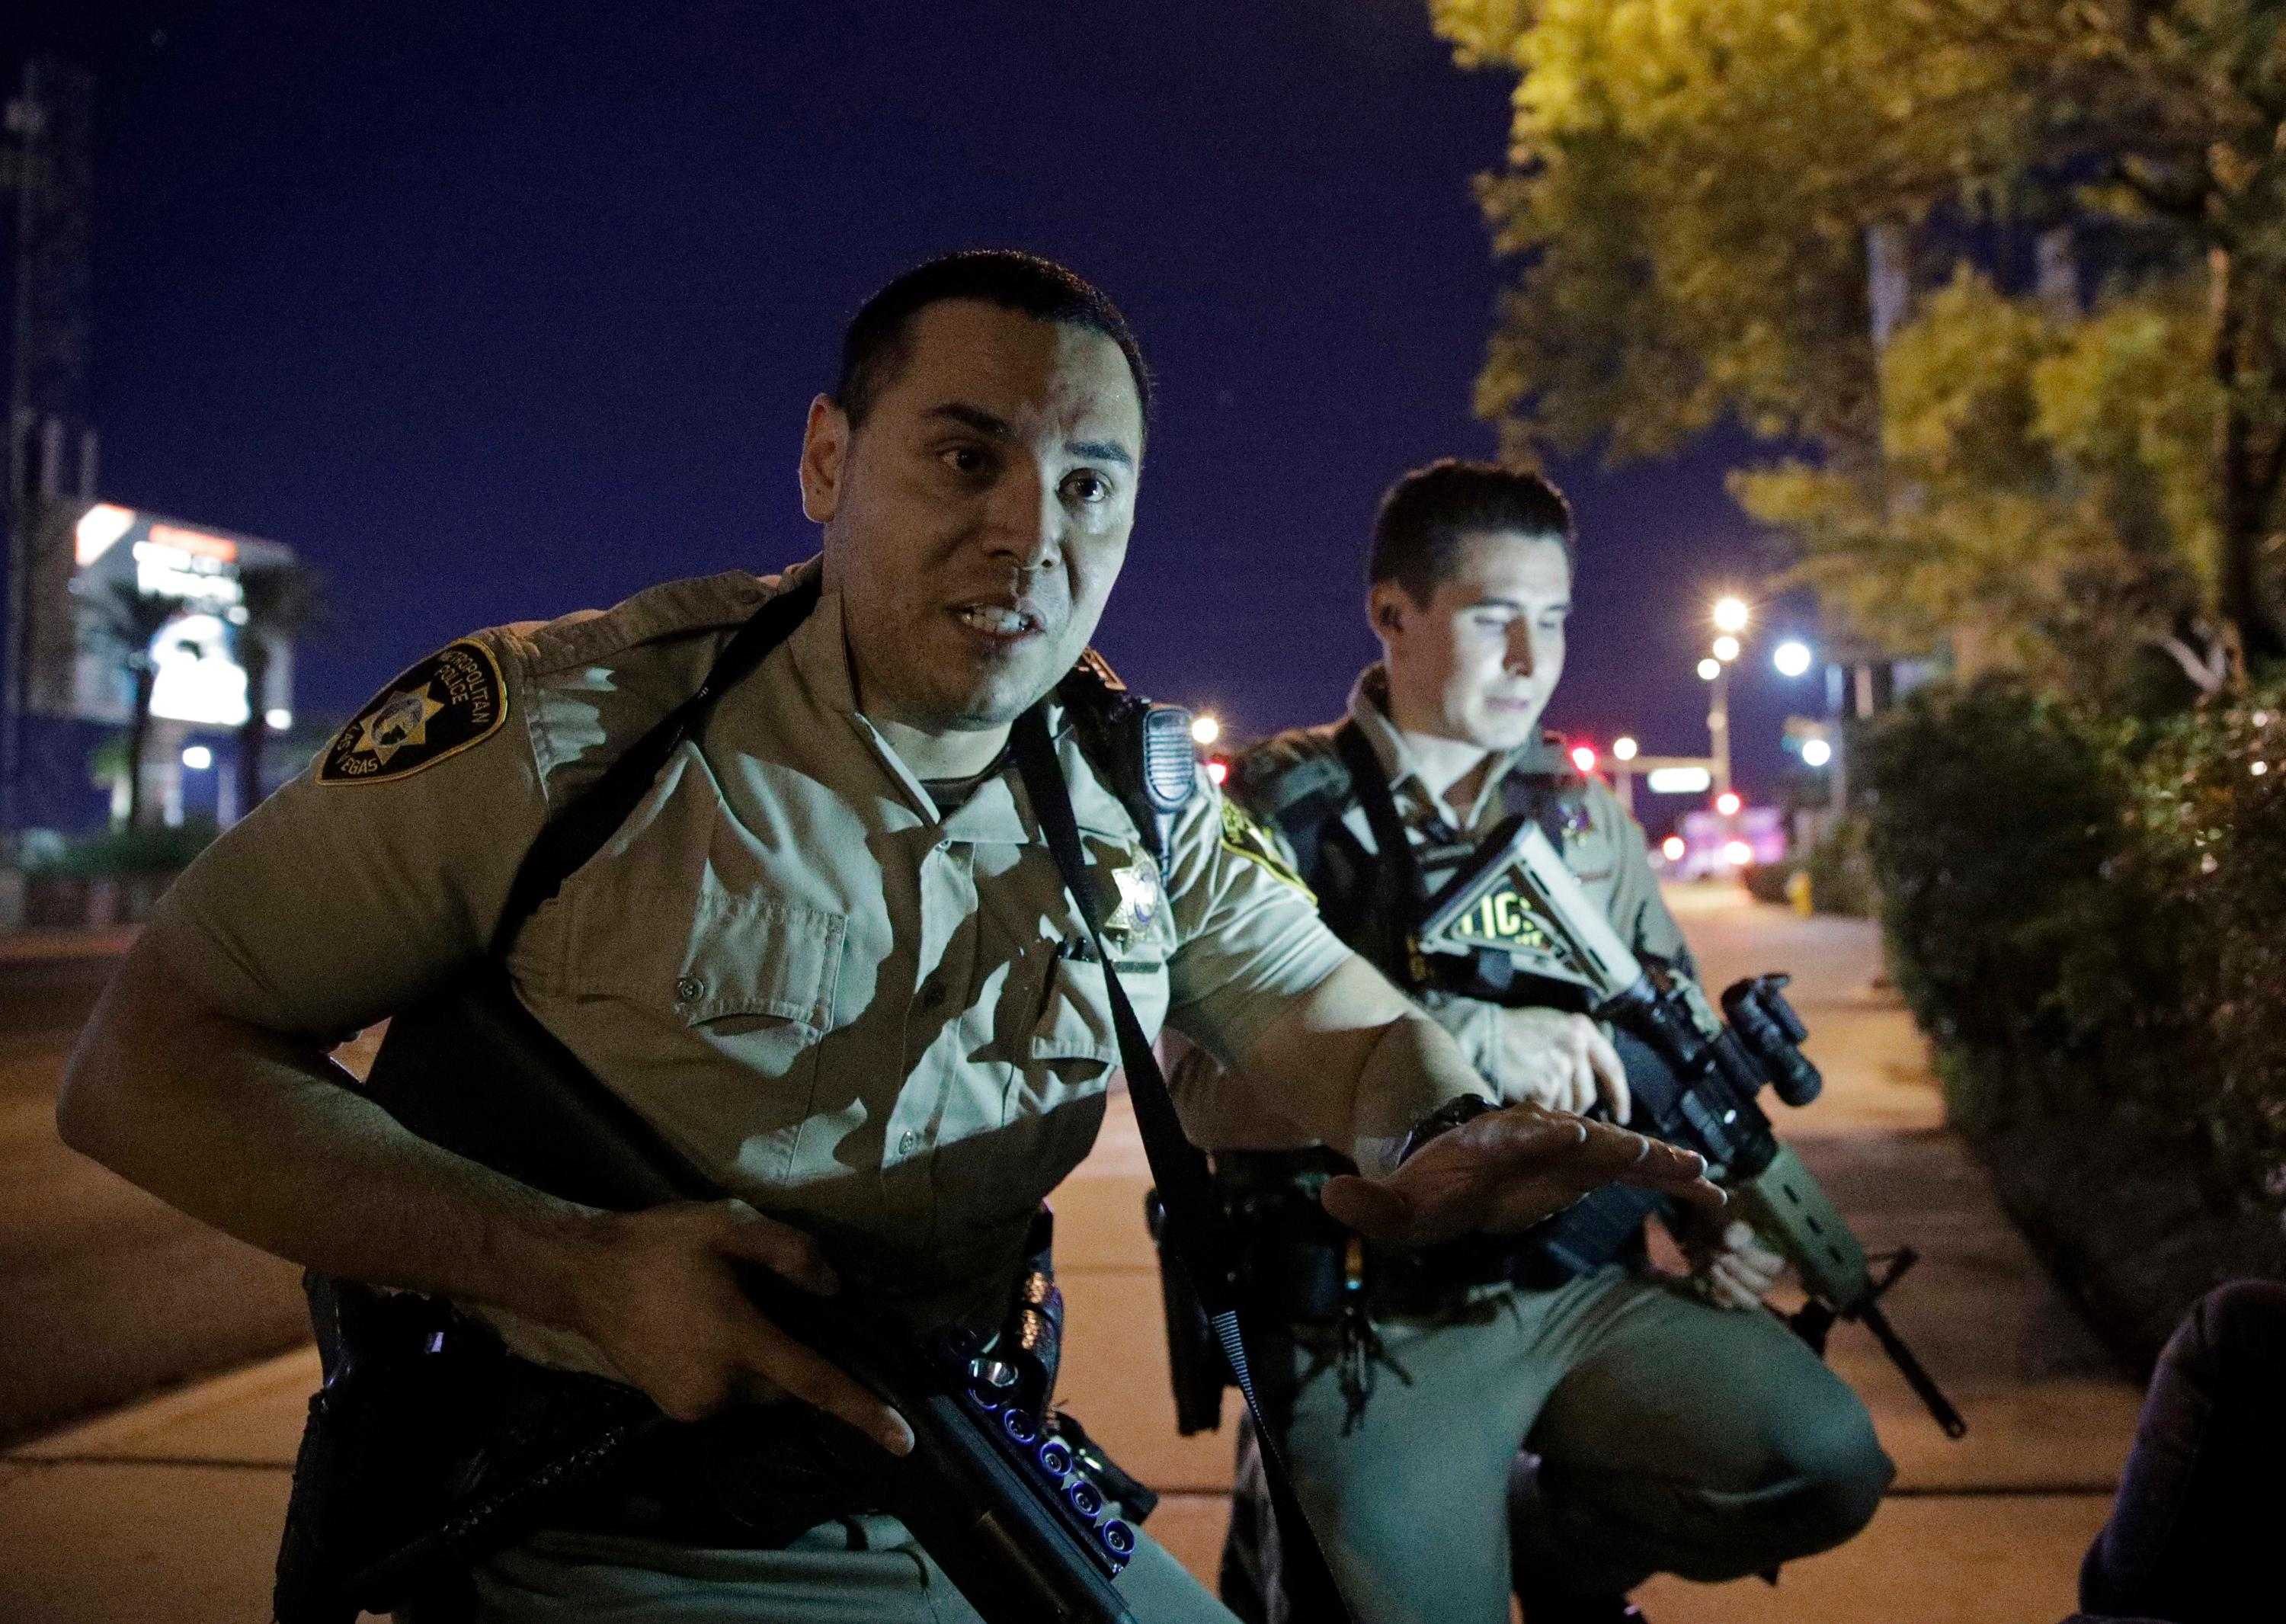 FILE - In this Sunday, Oct. 1, 2017 file photo, police officers tell people to take cover near the scene of a shooting near the Mandalay Bay resort and casino on the Las Vegas Strip, after Stephen Paddock opened fire on the Route 91 Harvest Festival killing dozens and wounding hundreds. The name of a man identified in court documents as a person of interest in the deadliest mass shooting in modern U.S. history was publicly revealed because of a court error. Clark County District Court Judge Elissa Cadish said Tuesday, Jan. 30, 2018, that her staff failed to black out the name in nearly 300 pages of documents released to news organizations including The Associated Press and Las Vegas Review-Journal.  (AP Photo/John Locher, File)